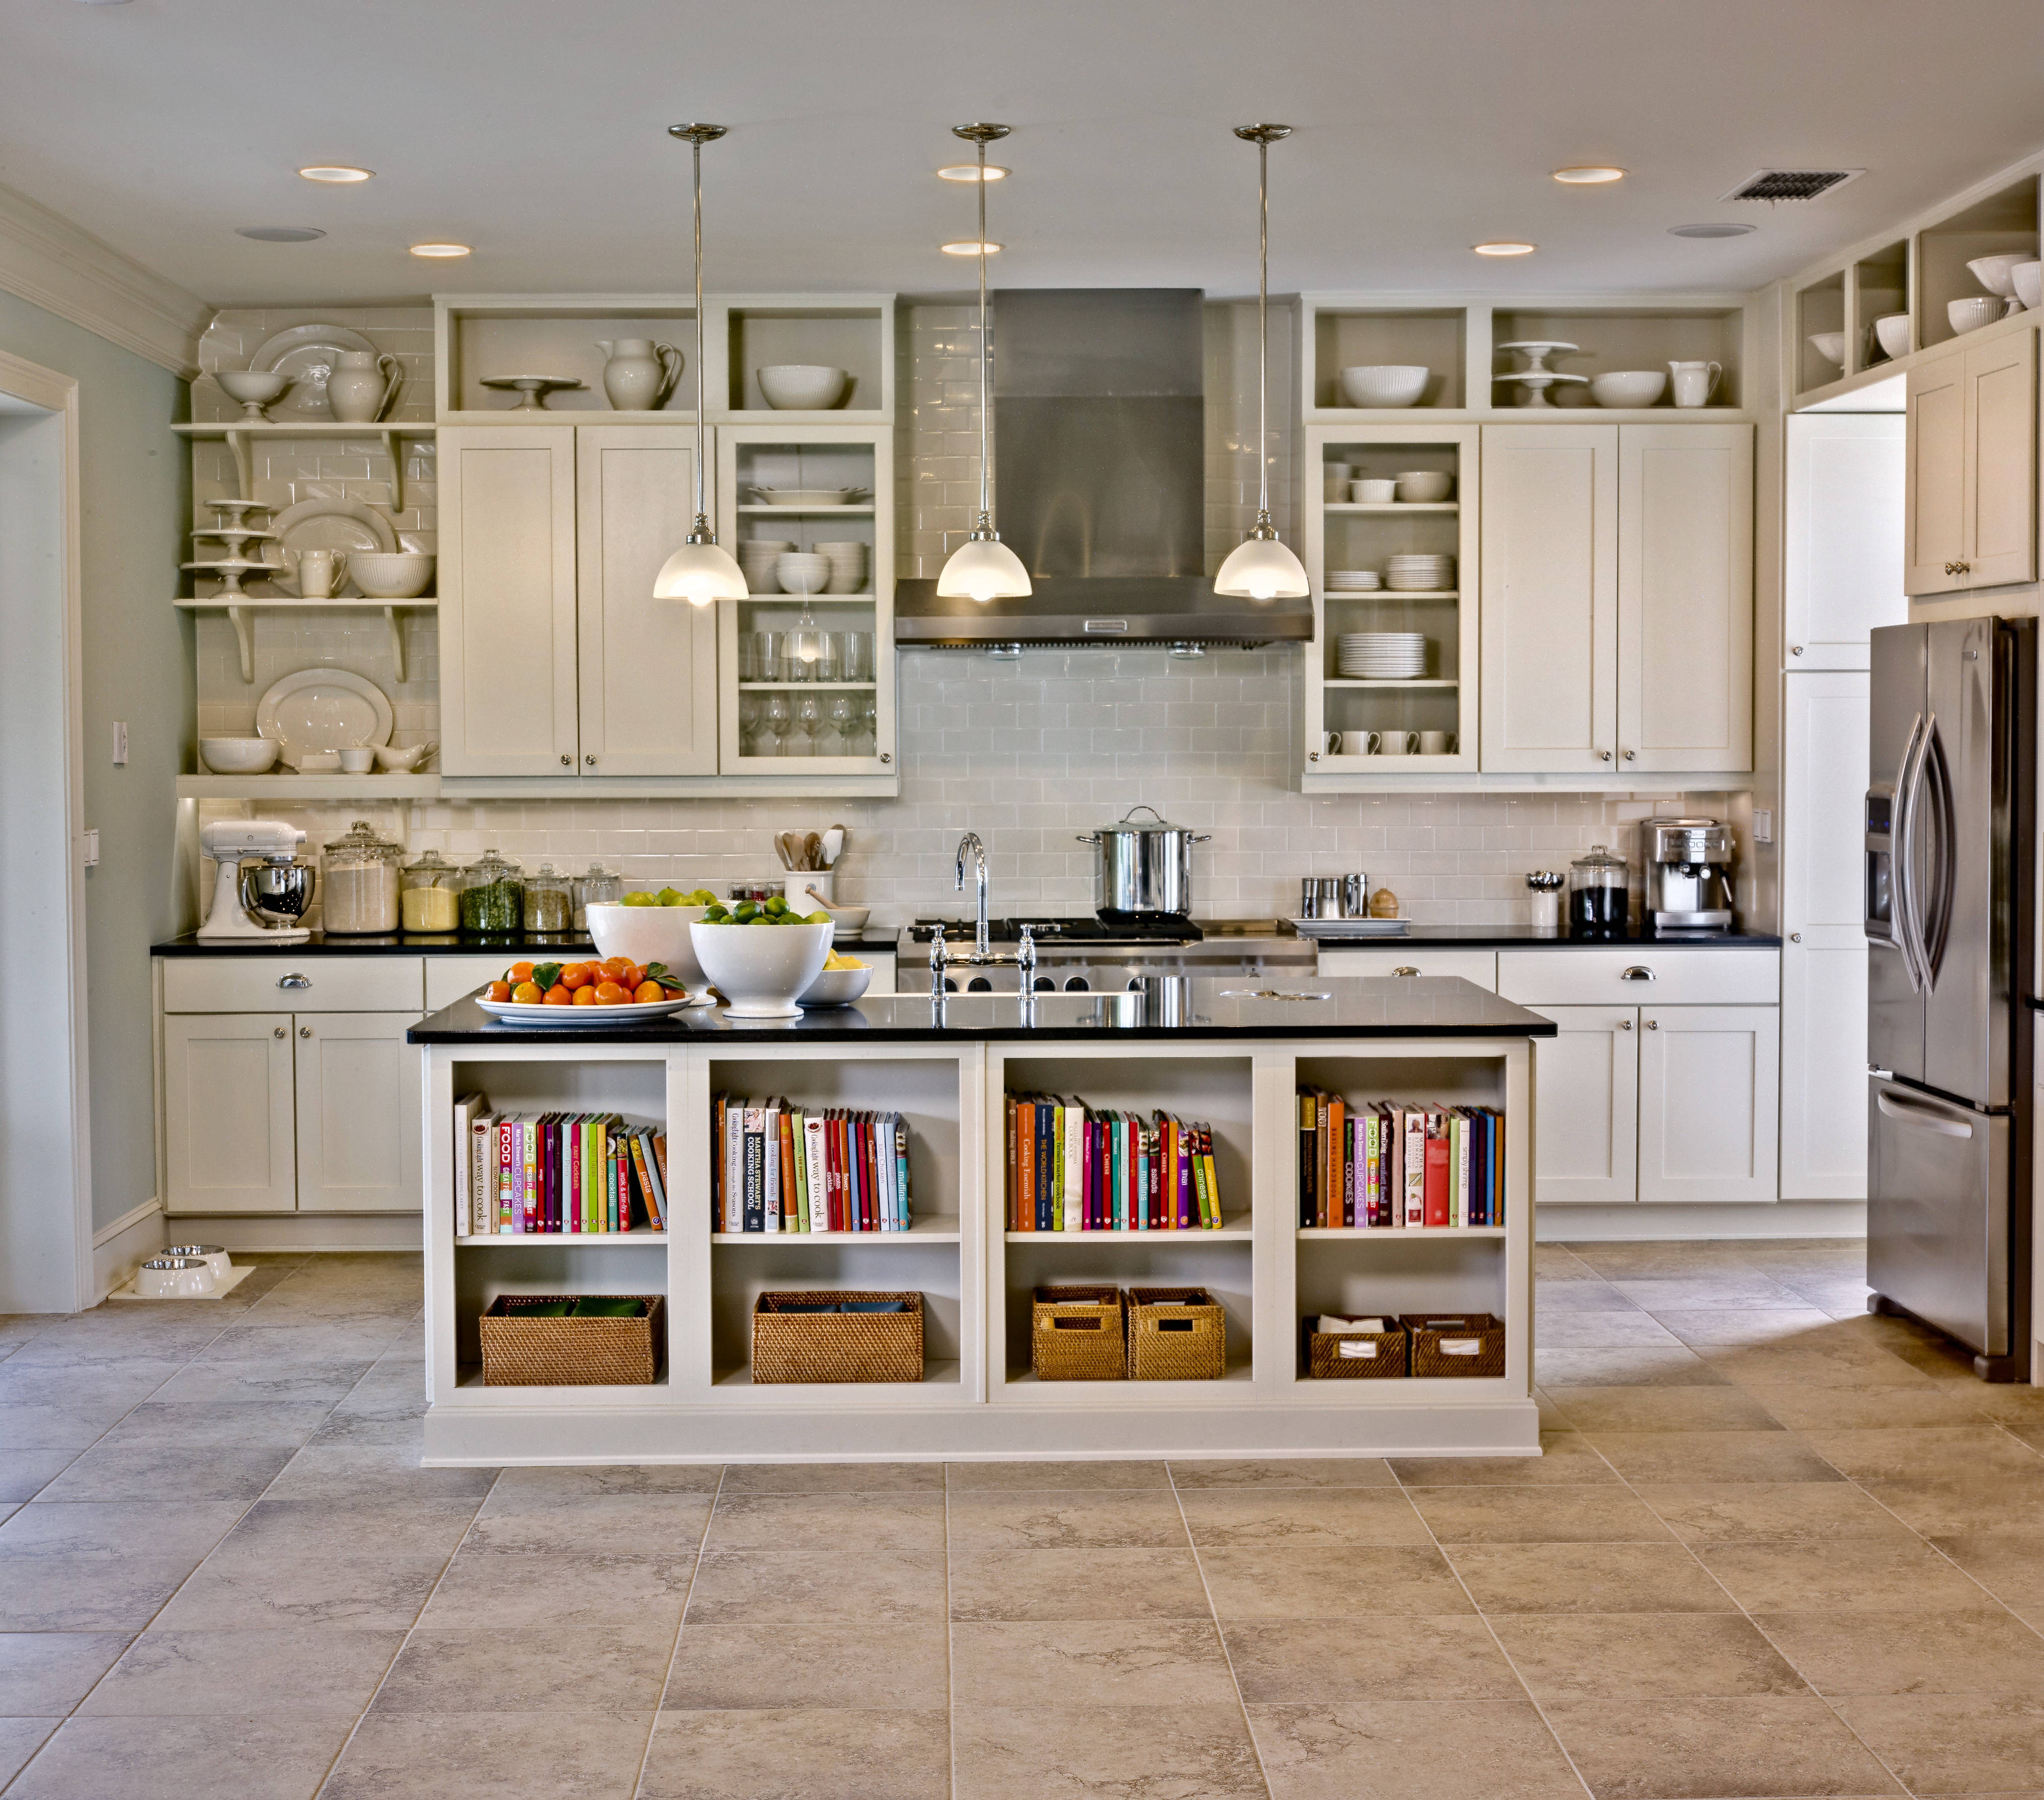 Ideas on how to smartly organize your kitchen for Kitchen ideas organizing